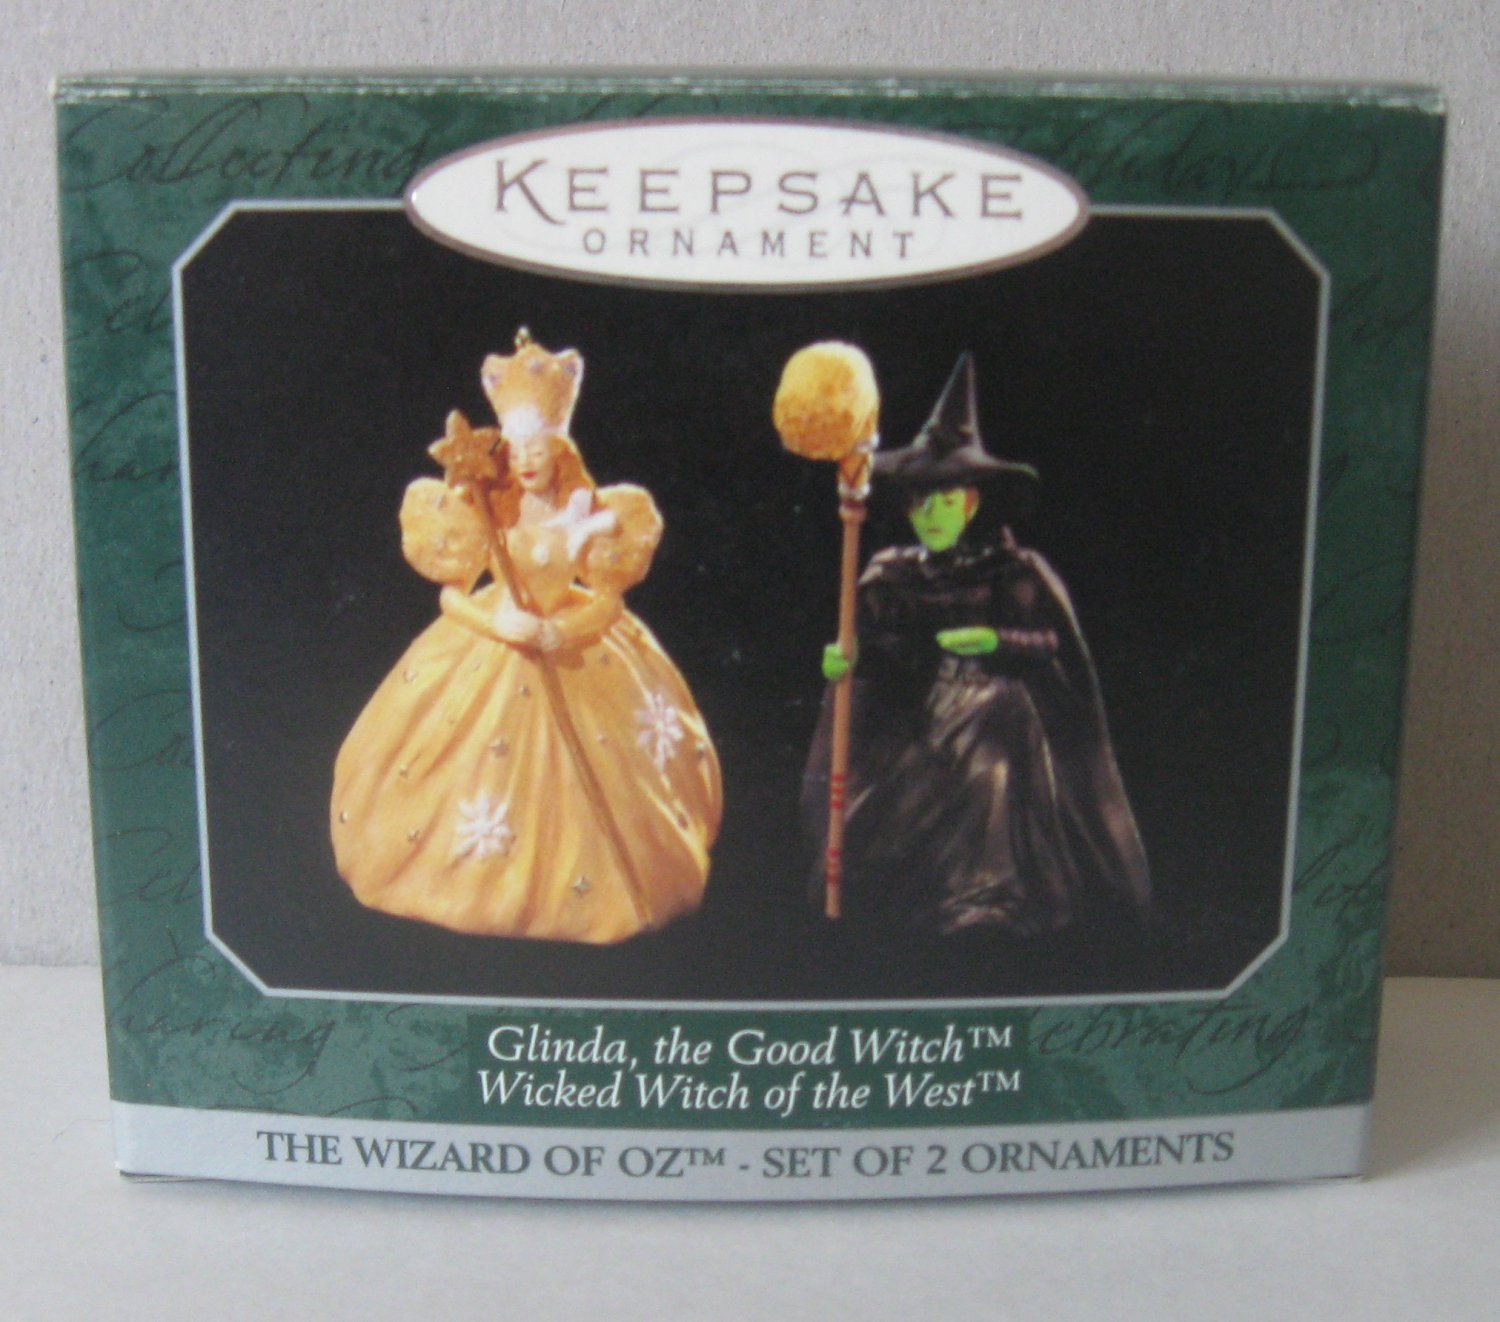 1997 Ornament Wizard of Oz Glinda the Good Witch & Wicked Witch of the West Set of 2.